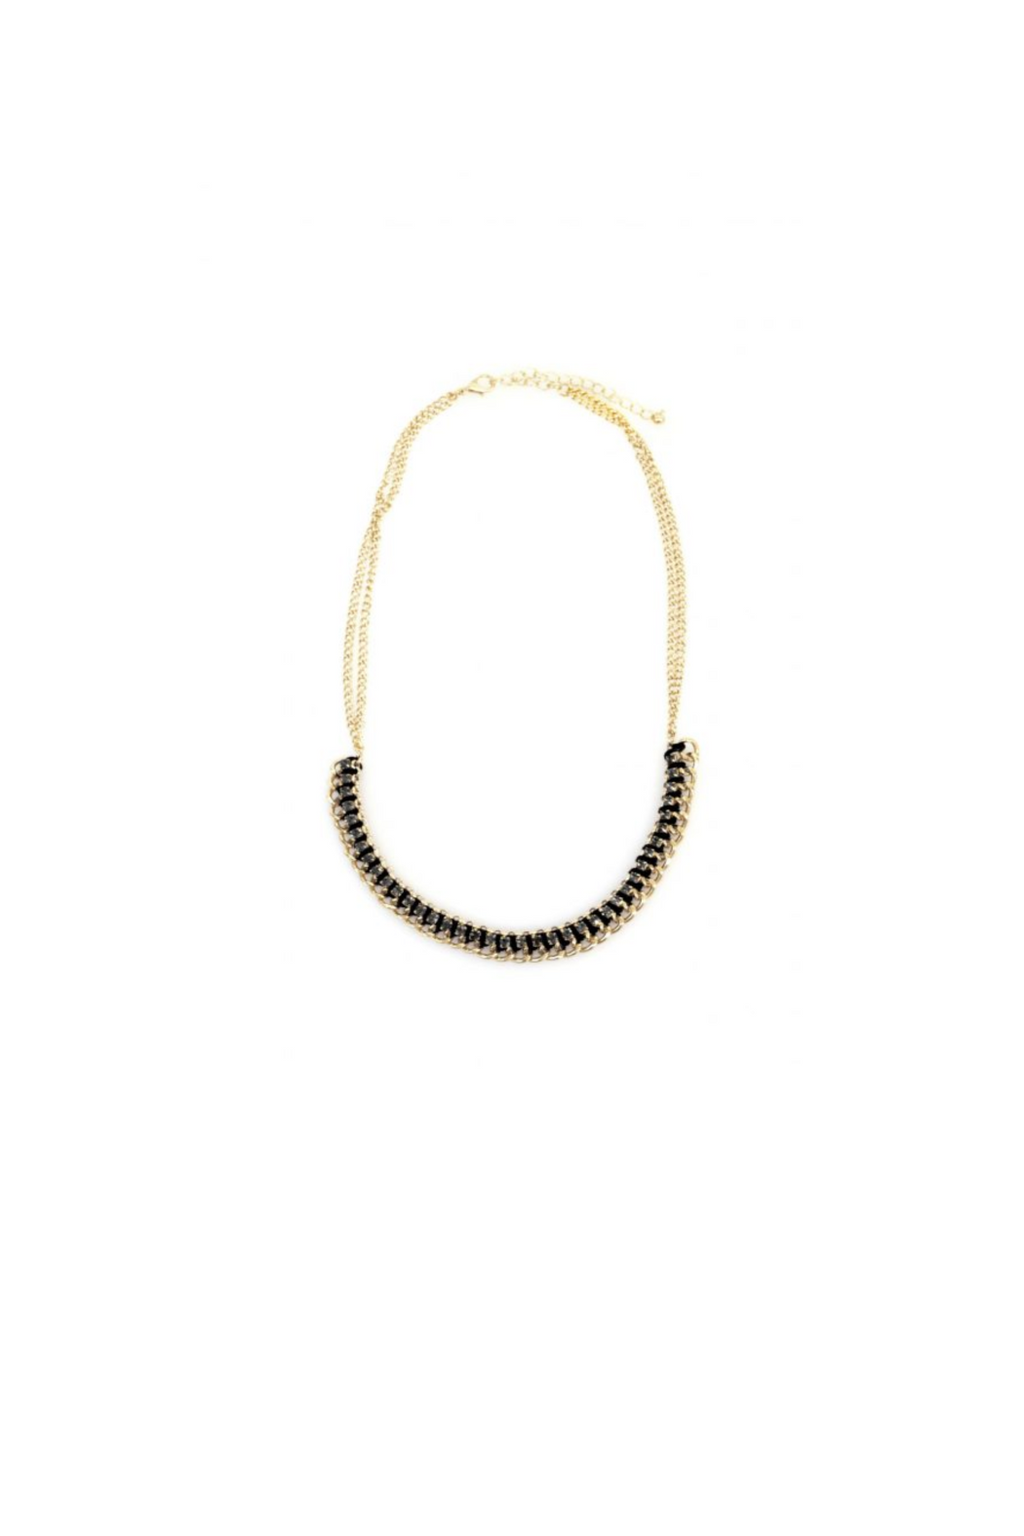 "21"" Gold Black Diamond Chain Necklace"